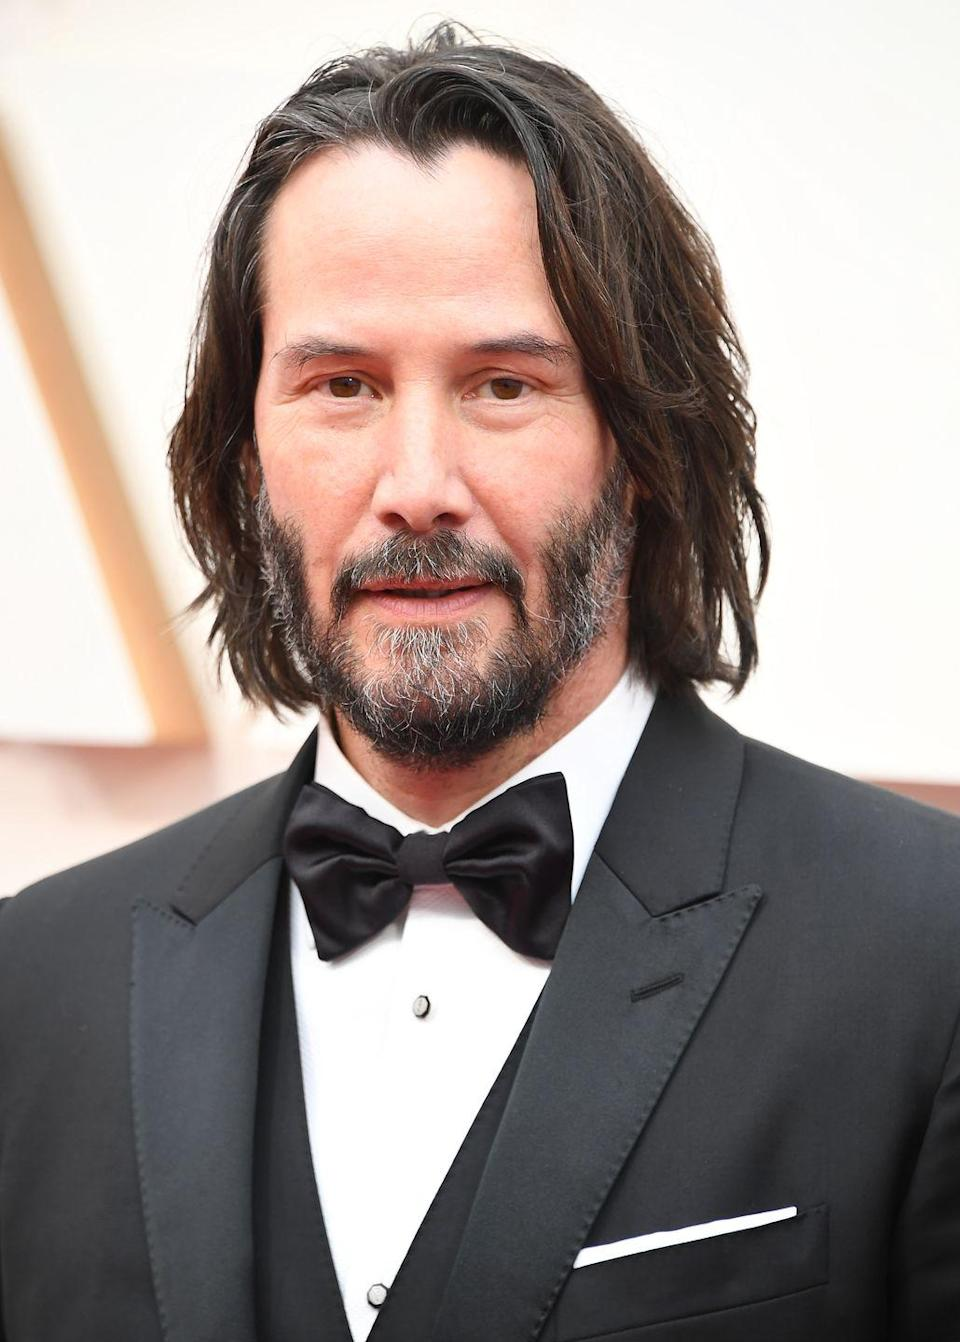 """<p>To this date, <strong>Keanu Reeves</strong> has over 100 <a href=""""https://www.imdb.com/name/nm0000206/"""" rel=""""nofollow noopener"""" target=""""_blank"""" data-ylk=""""slk:actor credits"""" class=""""link rapid-noclick-resp"""">actor credits</a> to his name, most of them being movie roles. His latest projects include playing Ted in <em>Bill & Ted Face the Music</em>, voicing Sage in <em>The SpongeBob Movie</em><em>: Sponge on the Run</em> and playing himself in Netflix and Good Universe's <em>Always Be My Maybe.</em> Keanu was born in Lebanon, but his dad was Native Hawaiian, British, Portuguese and Chinese. The actor's first name actually means """"cool breeze over the mountains"""" in Hawaiian.</p>"""